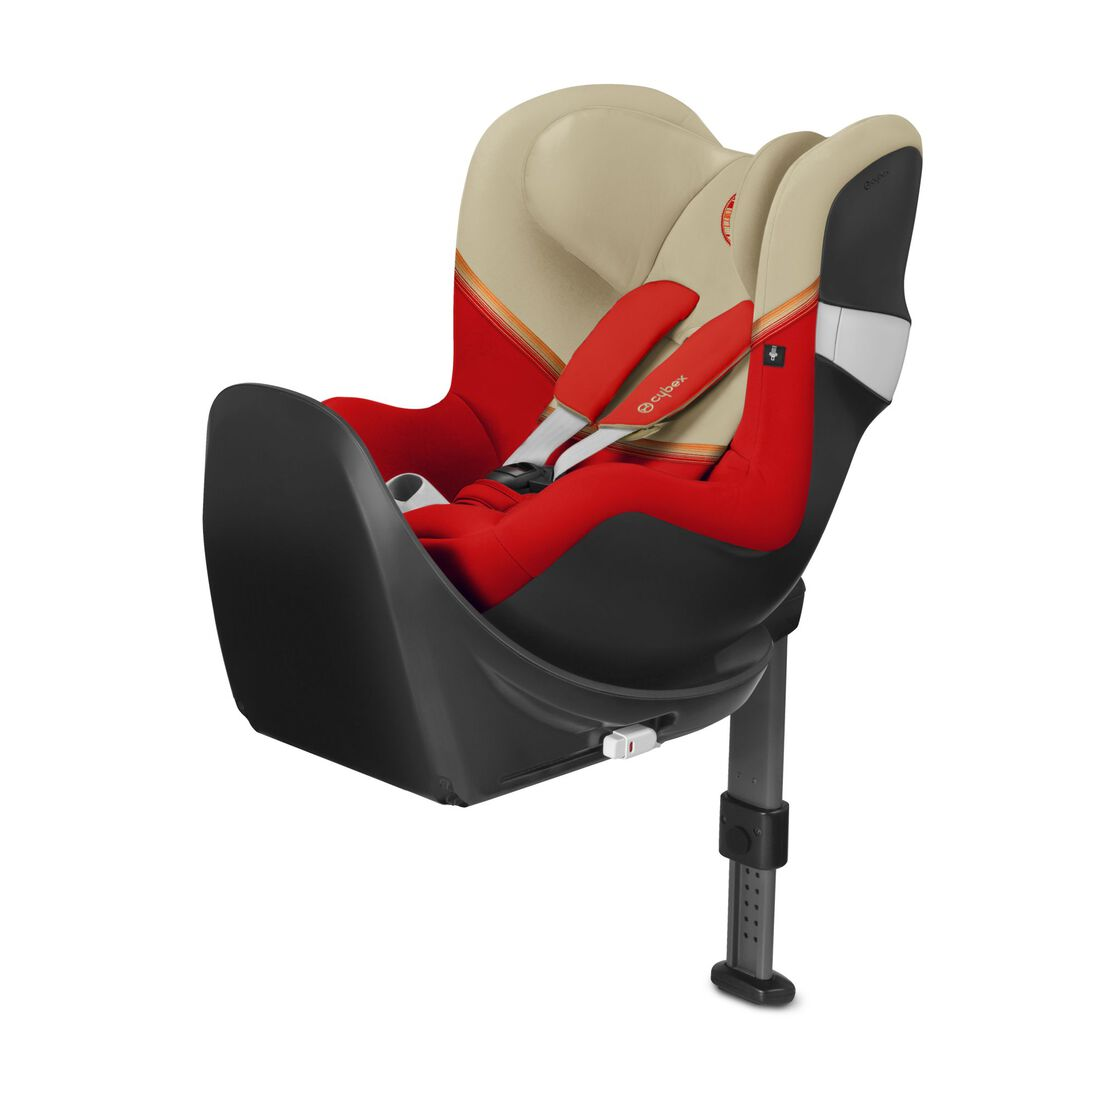 CYBEX Sirona M2 i-Size - Autumn Gold in Autumn Gold large image number 2